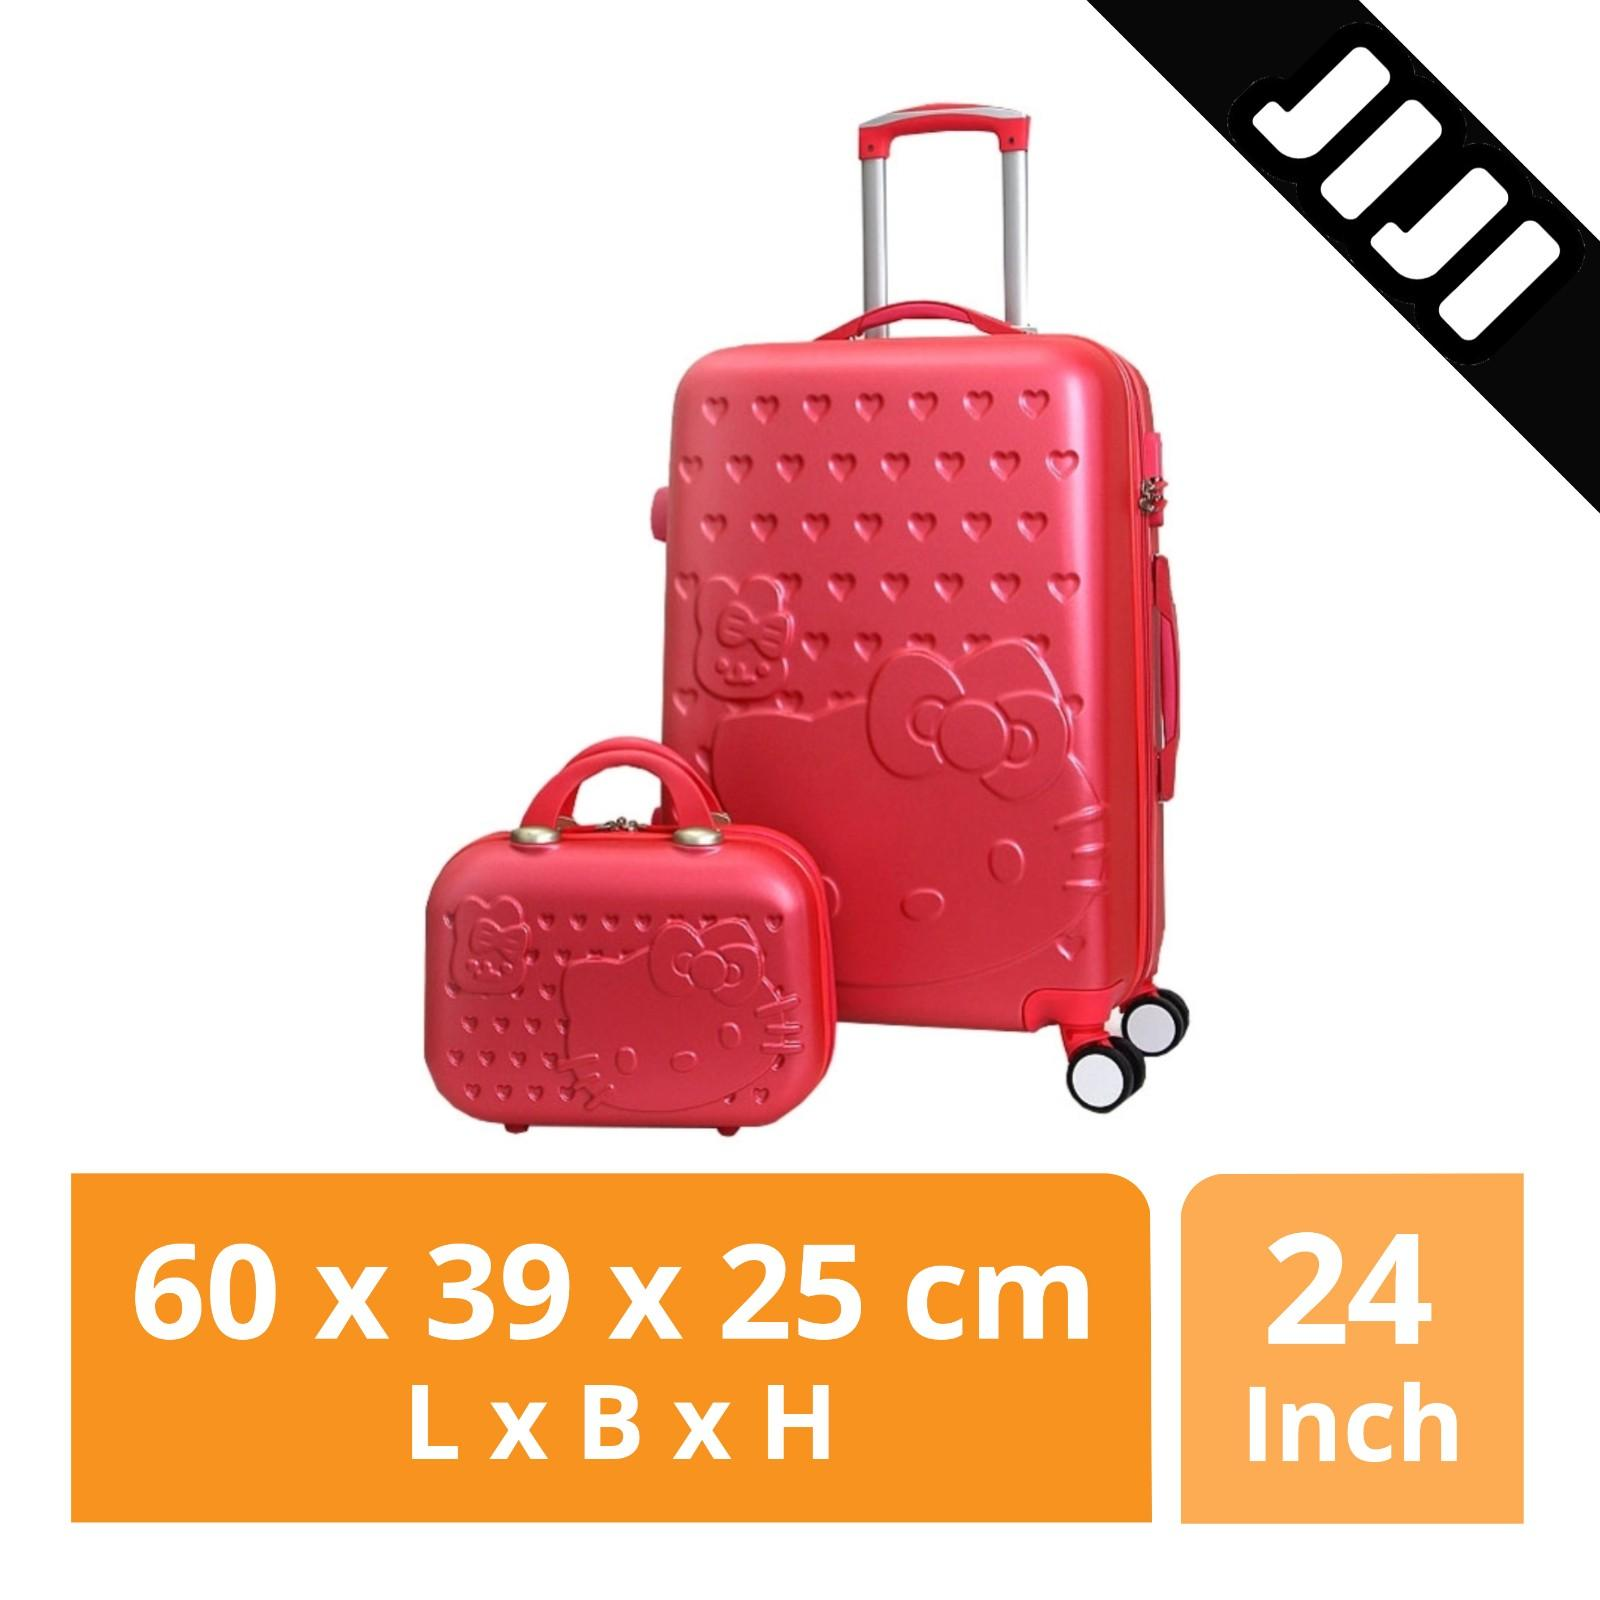 Jiji Hello Kitty Luggage With Suitcase 20/24 Inch - Travel Bags / Refined / Traveling (sg) By Jiji.